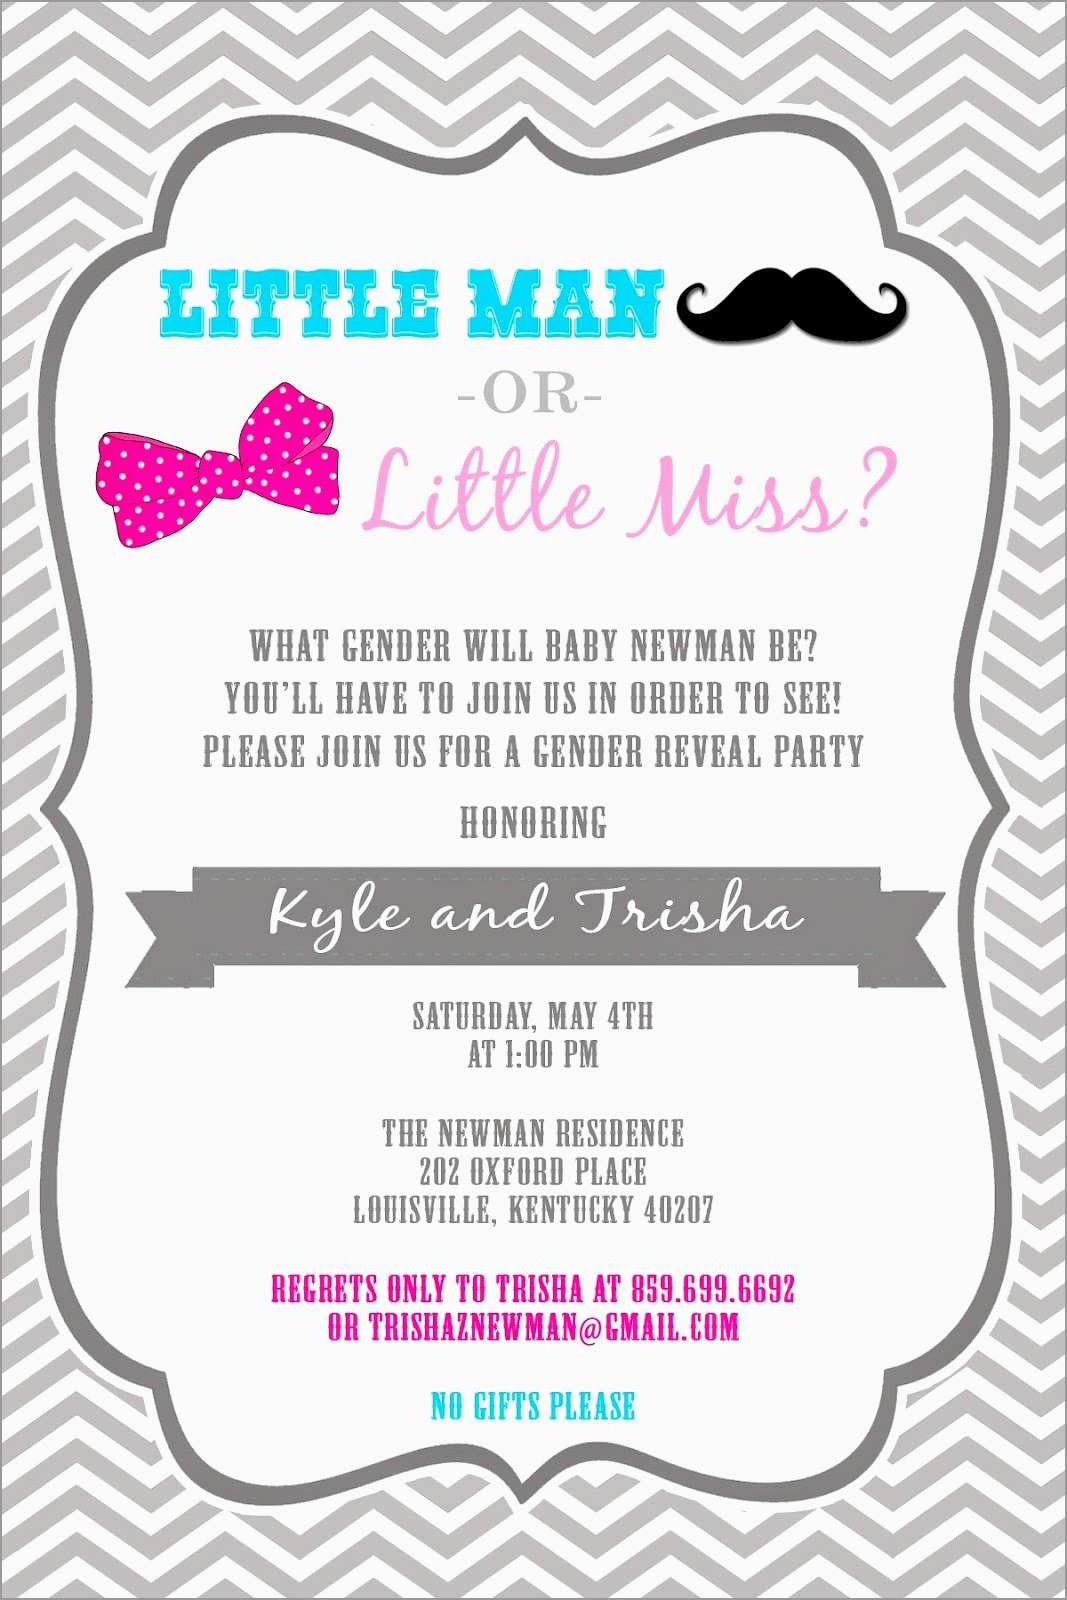 Luxury Free Printable Gender Reveal Invitation Templates | Best Of - Free Printable Gender Reveal Templates